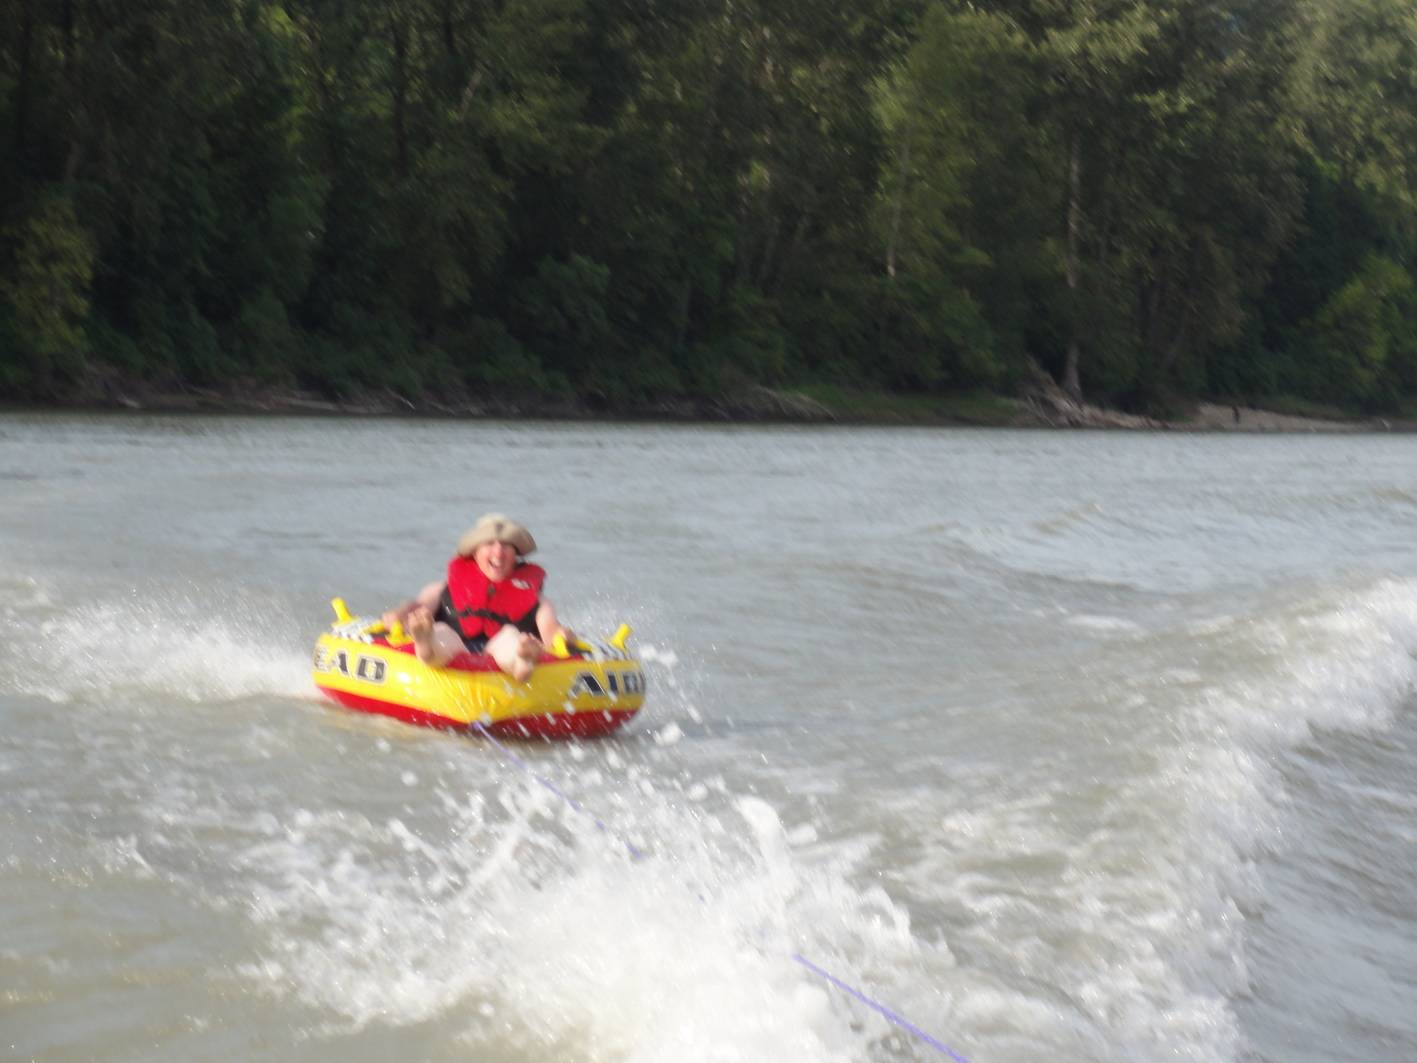 Picture:  Ruth went for a drag on the tube behind the boat.  The Fraser River, B.C., Canada